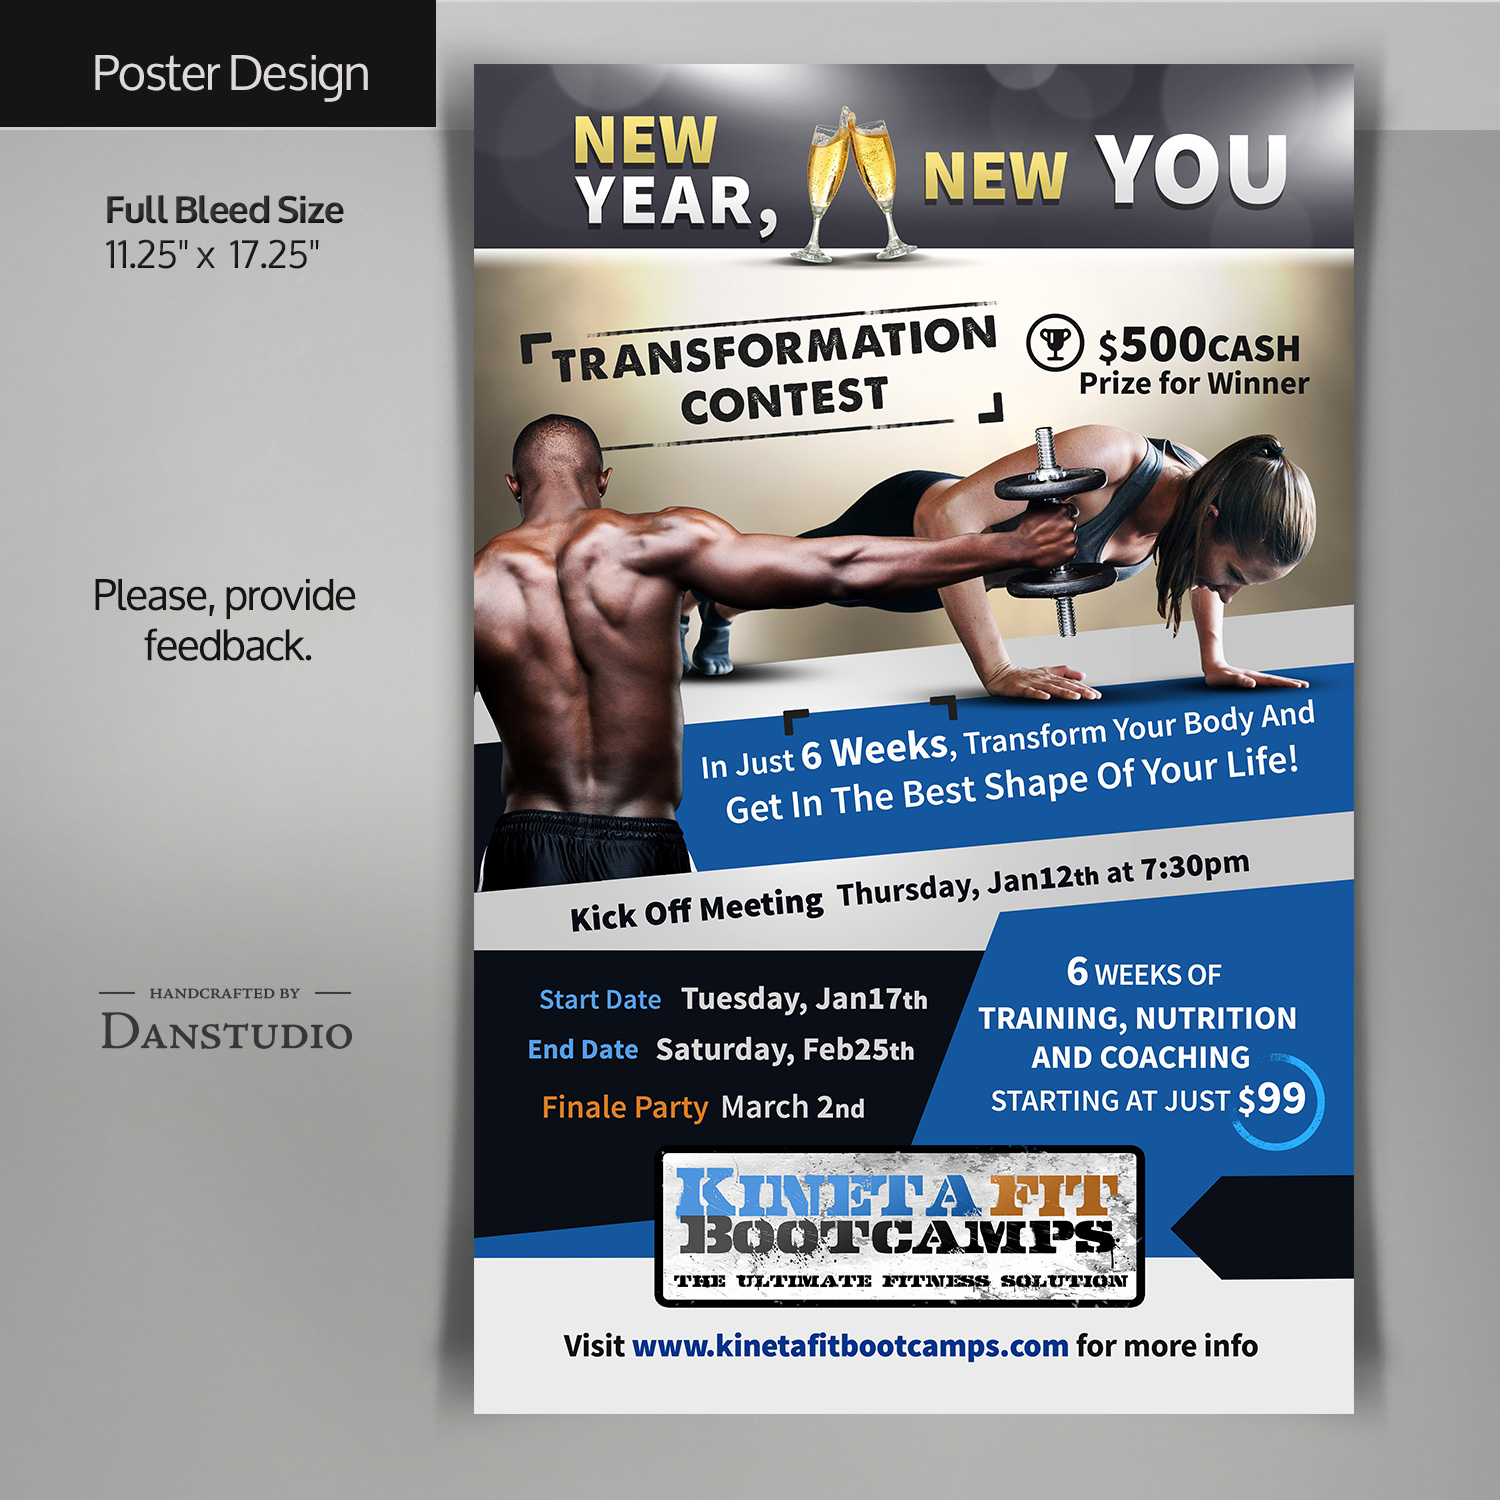 Poster design 99 - Flyer Design By Danstudio For New Year New You Transformation Contest 2017 Poster Design